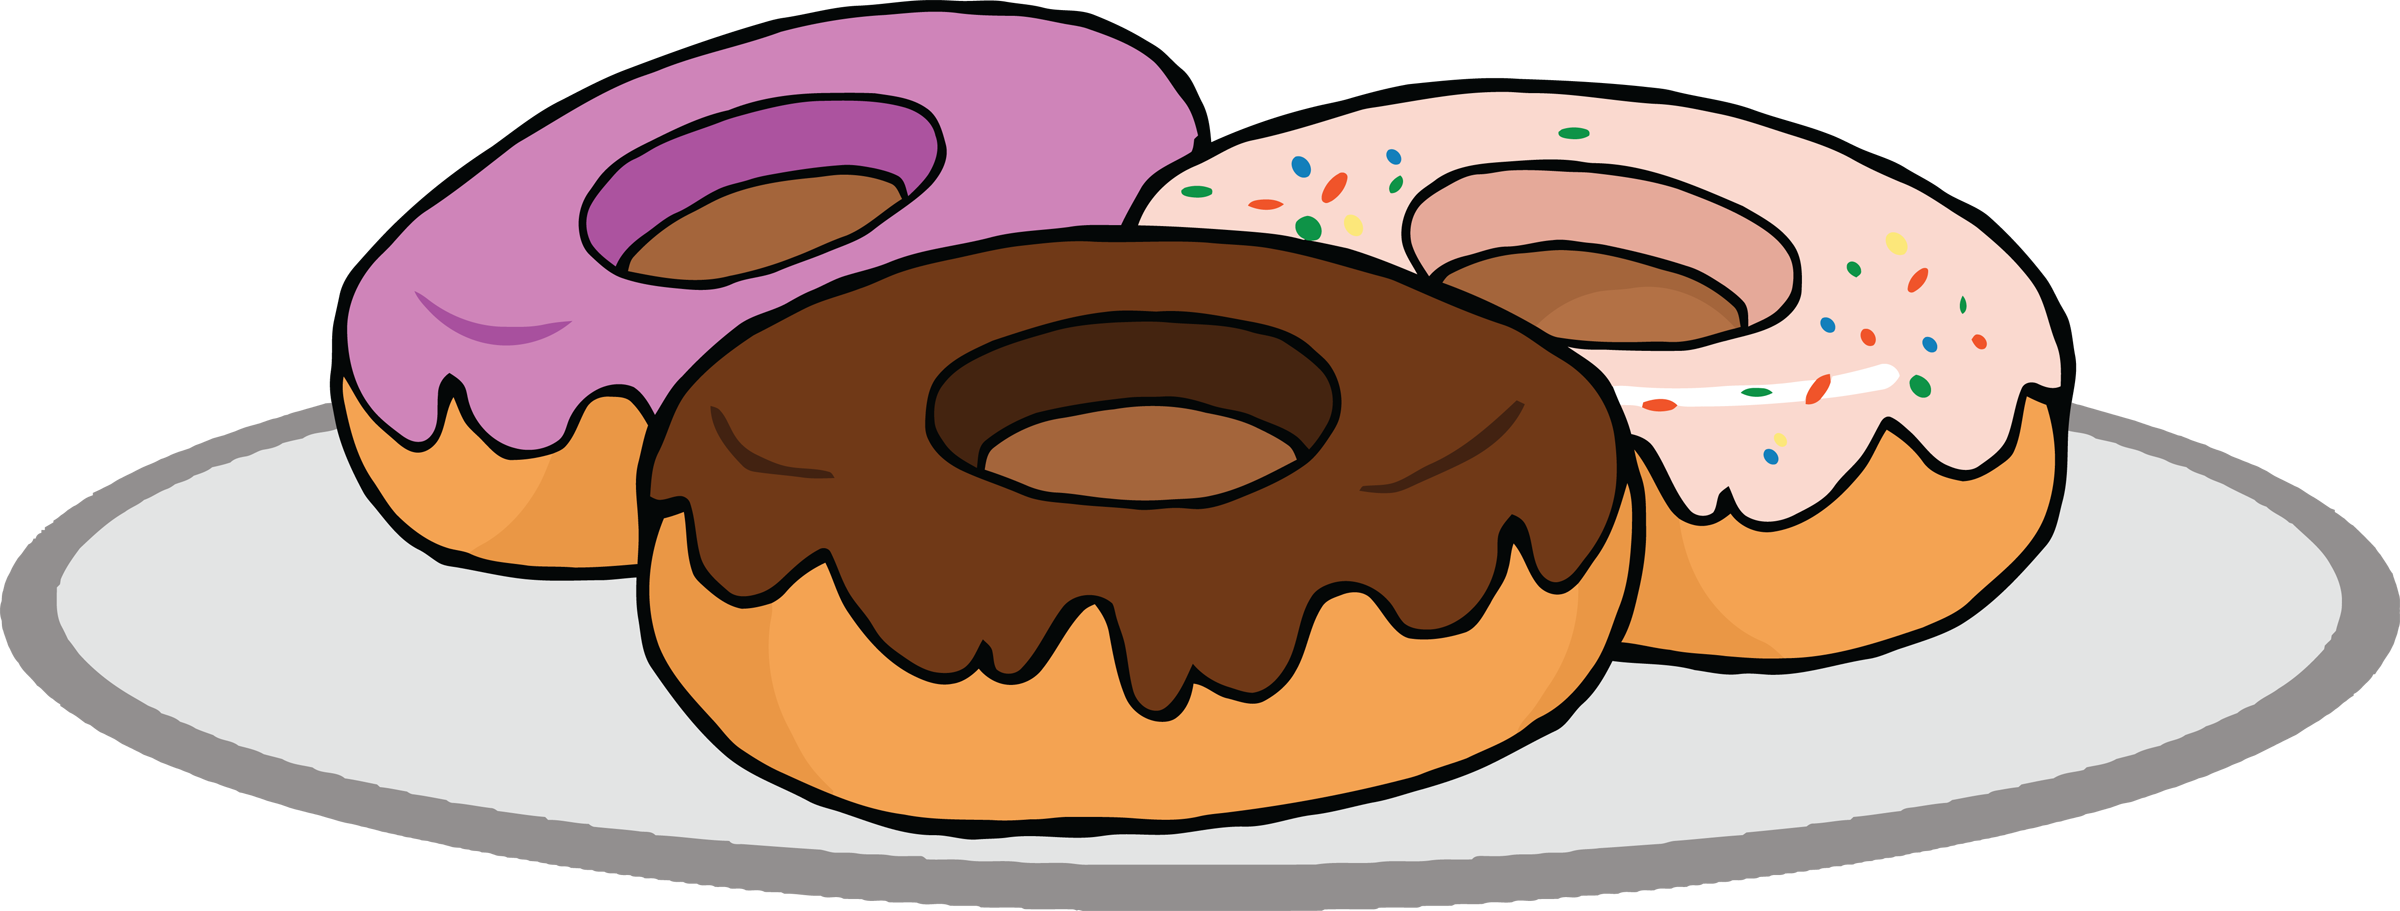 Apple cider and donuts clipart clipart transparent 28+ Collection of Donuts Clipart Free | High quality, free cliparts ... clipart transparent